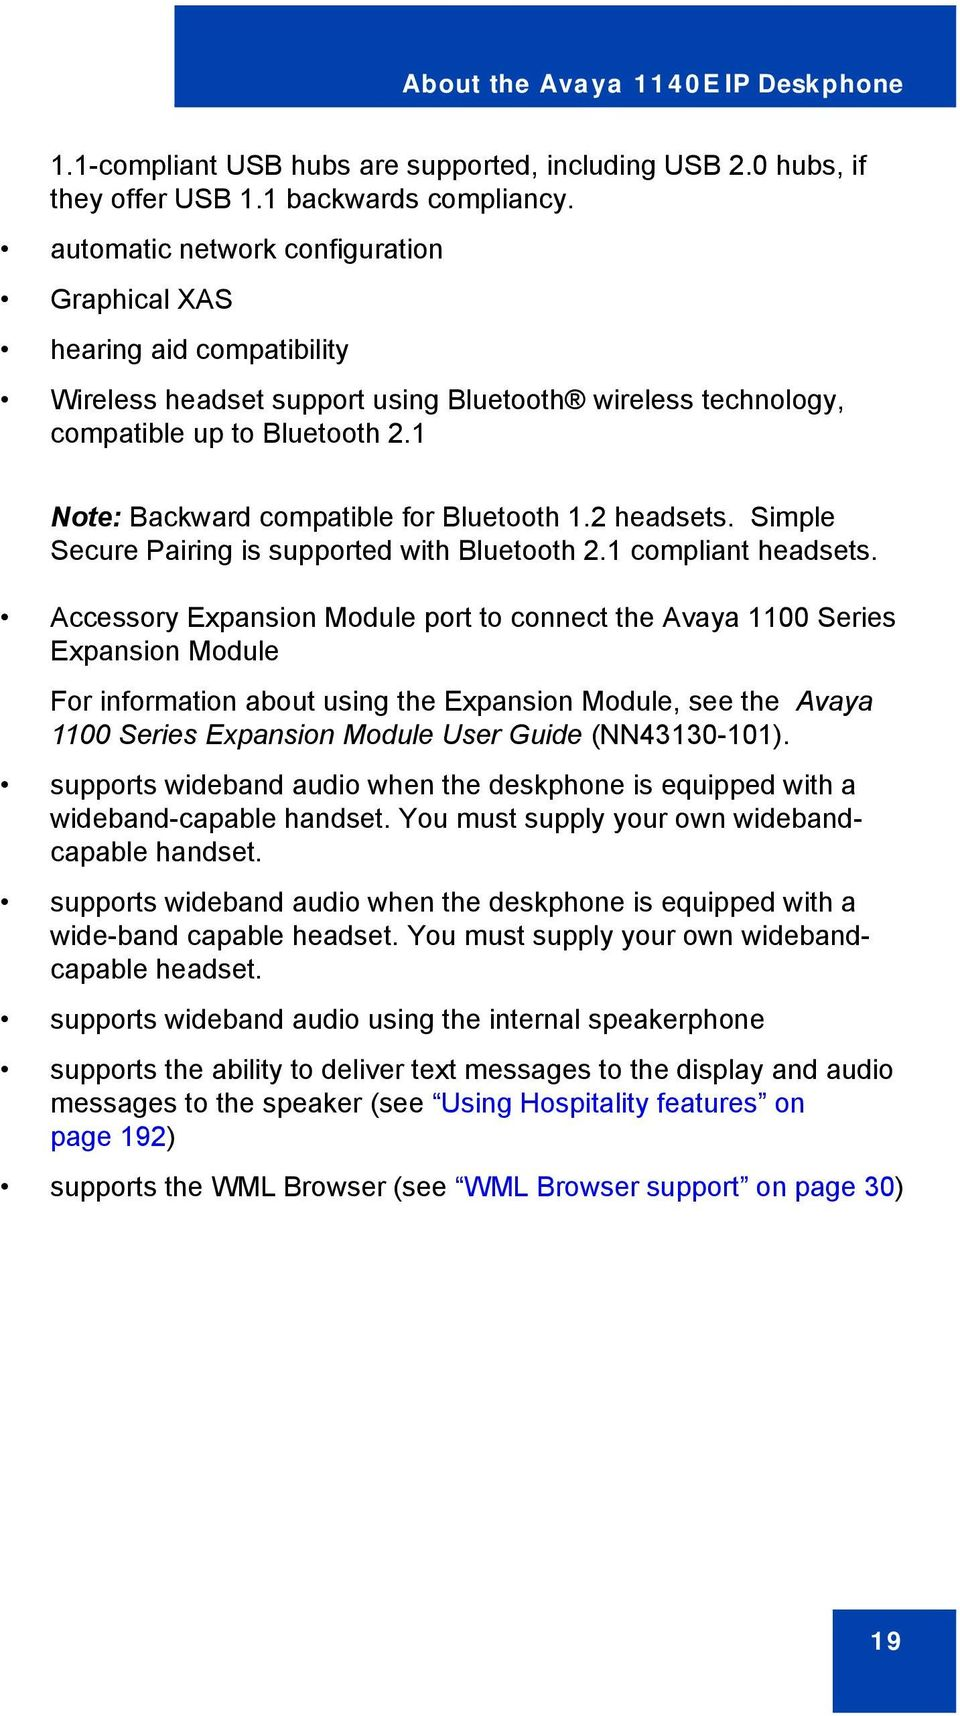 1 Note: Backward compatible for Bluetooth 1.2 headsets. Simple Secure Pairing is supported with Bluetooth 2.1 compliant headsets.